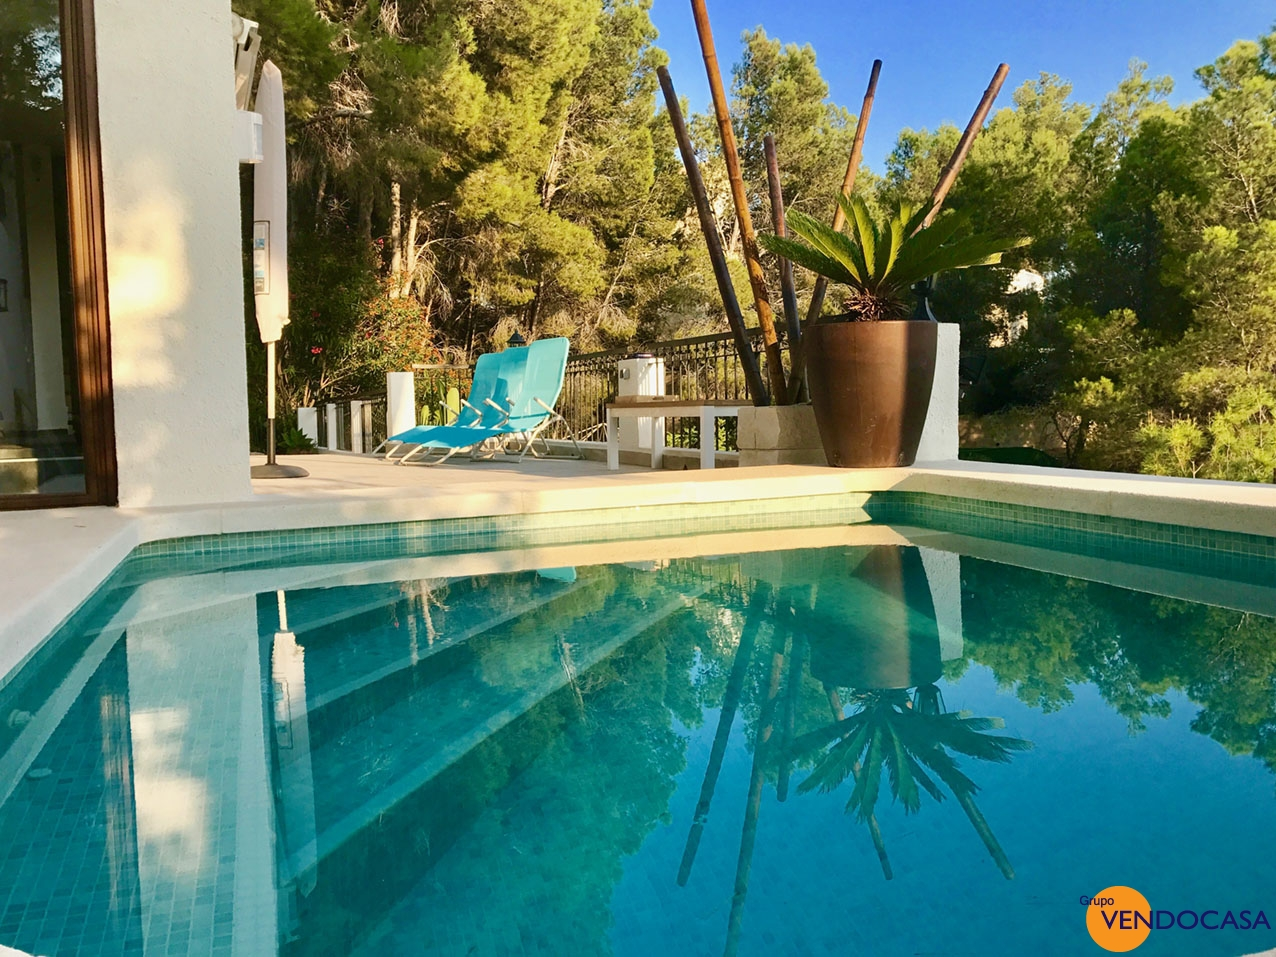 Superb 4 bedroom Villa at Altea la Vella